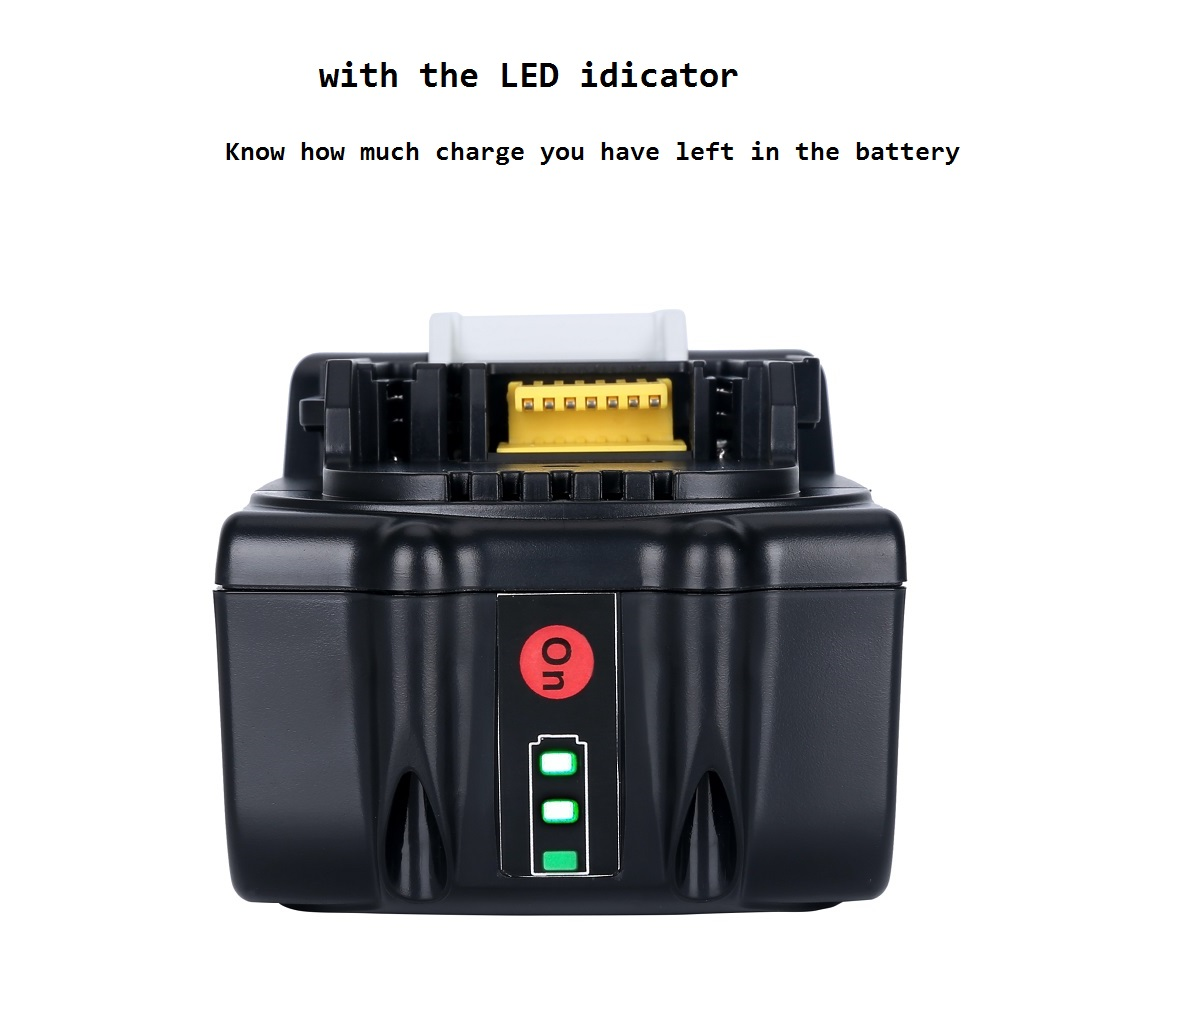 New Replacement 18V 5.0Ah Battery with LED Indicator for Makita LXT Lithium-Ion Power Tools 194205-3 BL1830 BL1850 BL1840